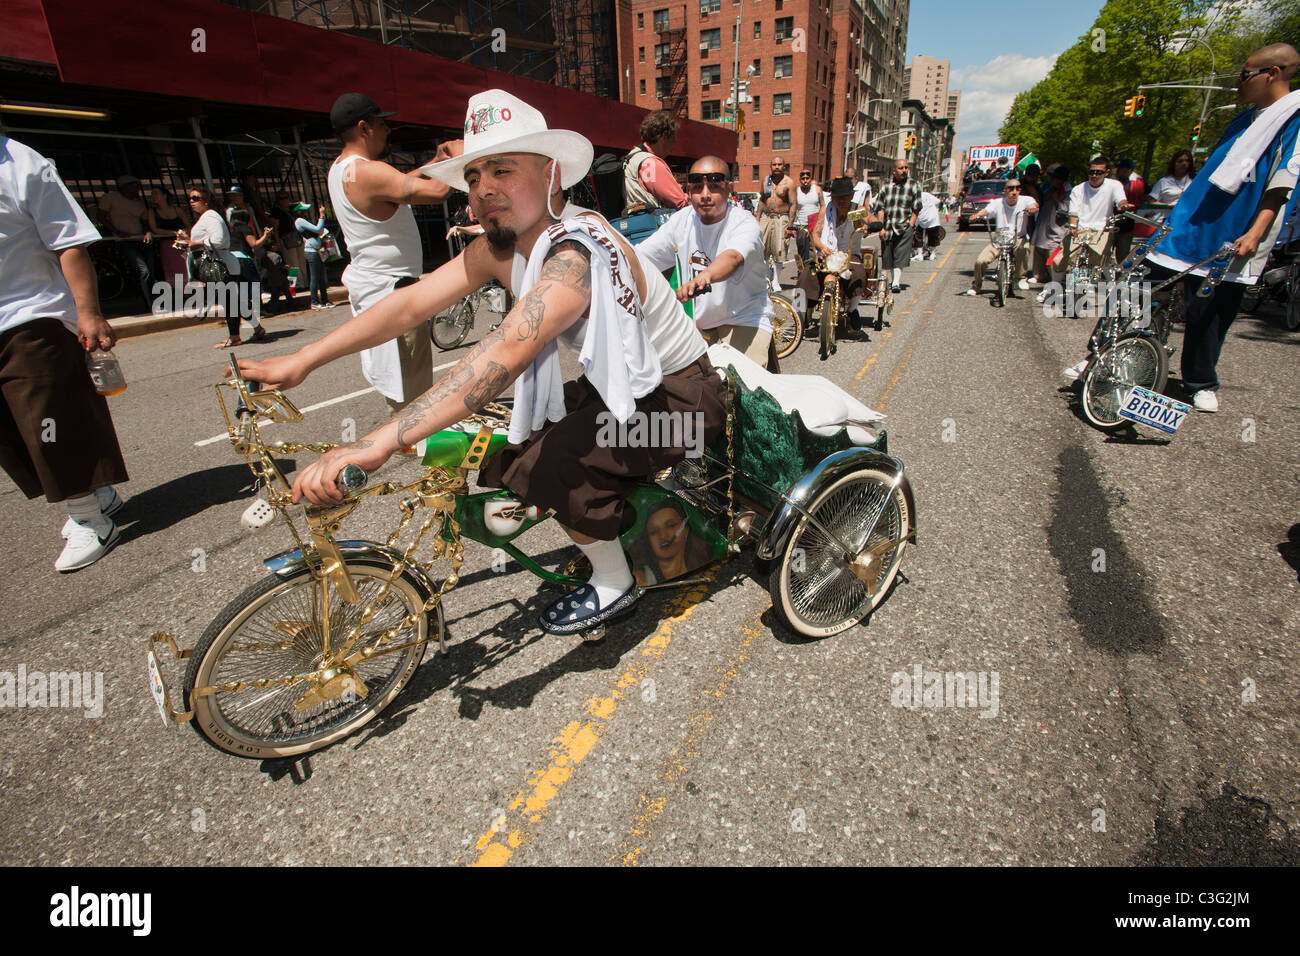 Members of the Brown Life bicycle club in the Cinco de Mayo Parade in New York - Stock Image